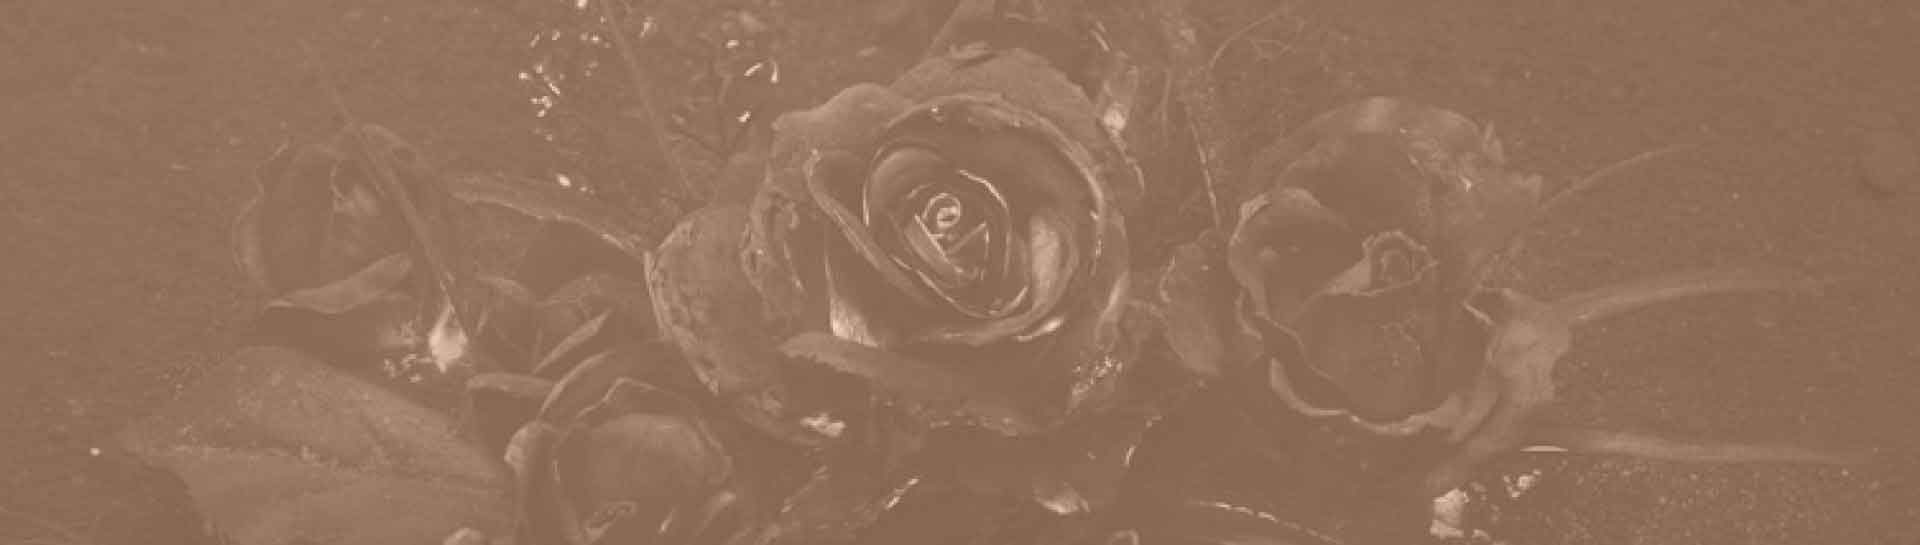 featured image of geochemical phytoremediation technology showing burning roses and ash modified after an image of arsthanea.com